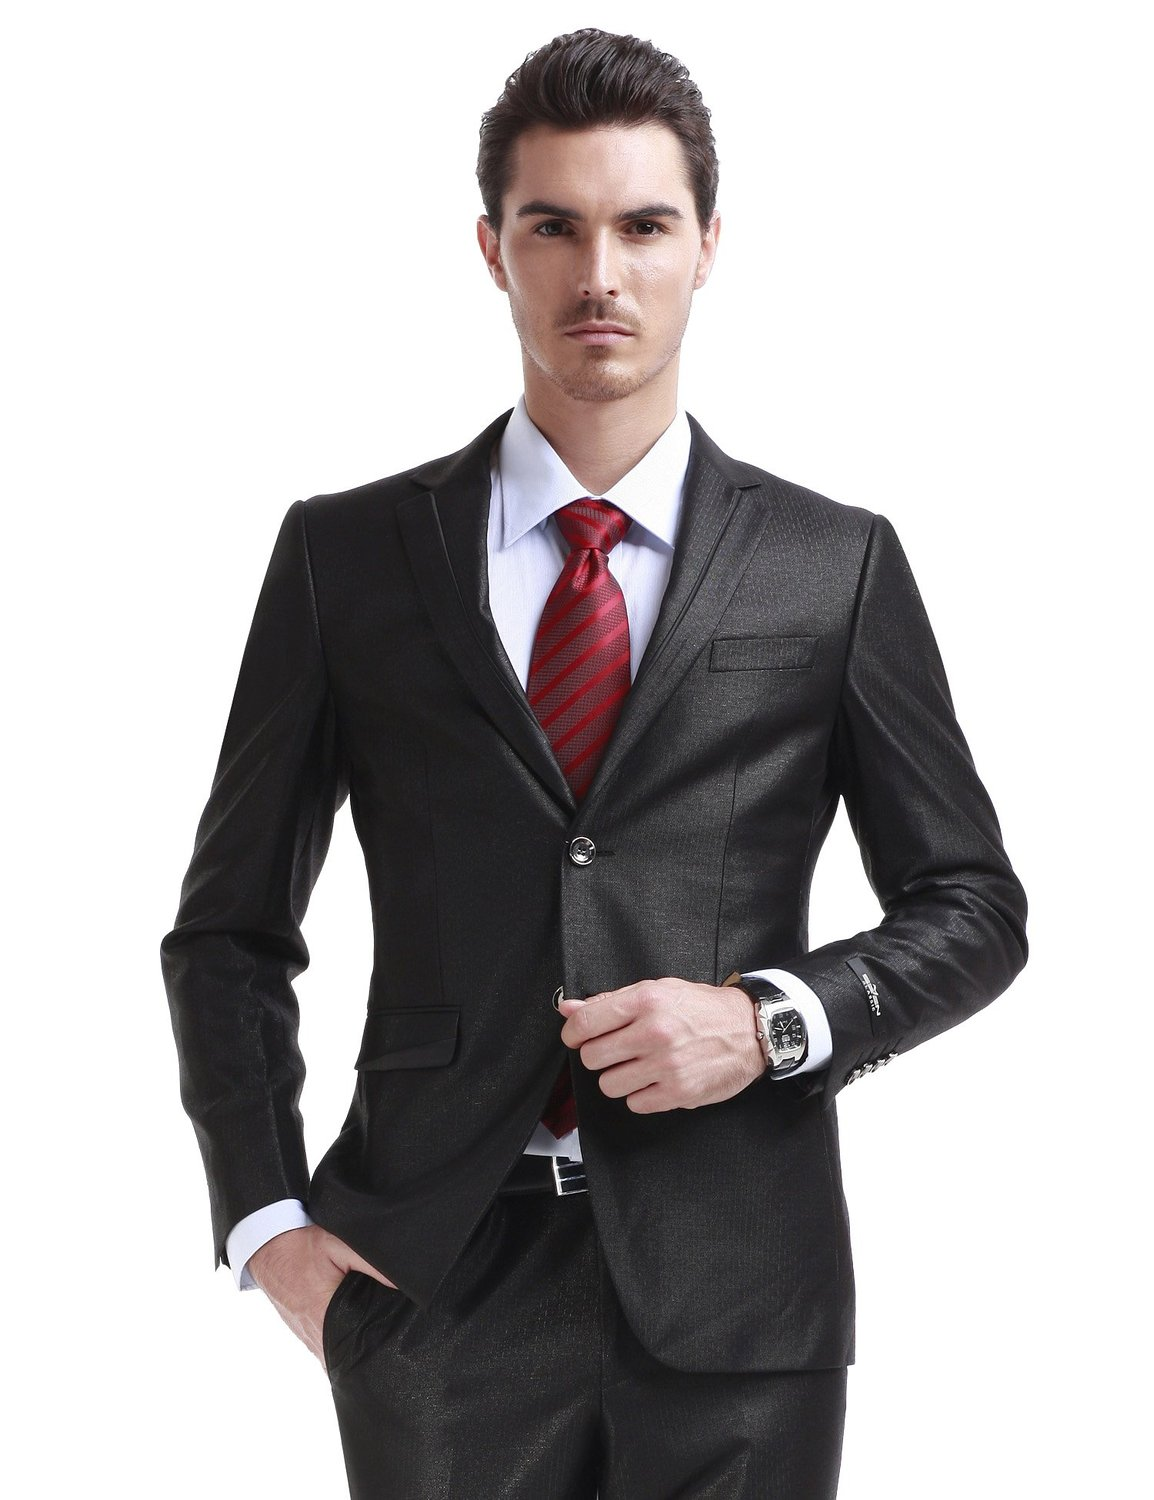 e0b4d8ff Italian Wool Suit fabric,Made To Measure Men Suits SHL12, View ...